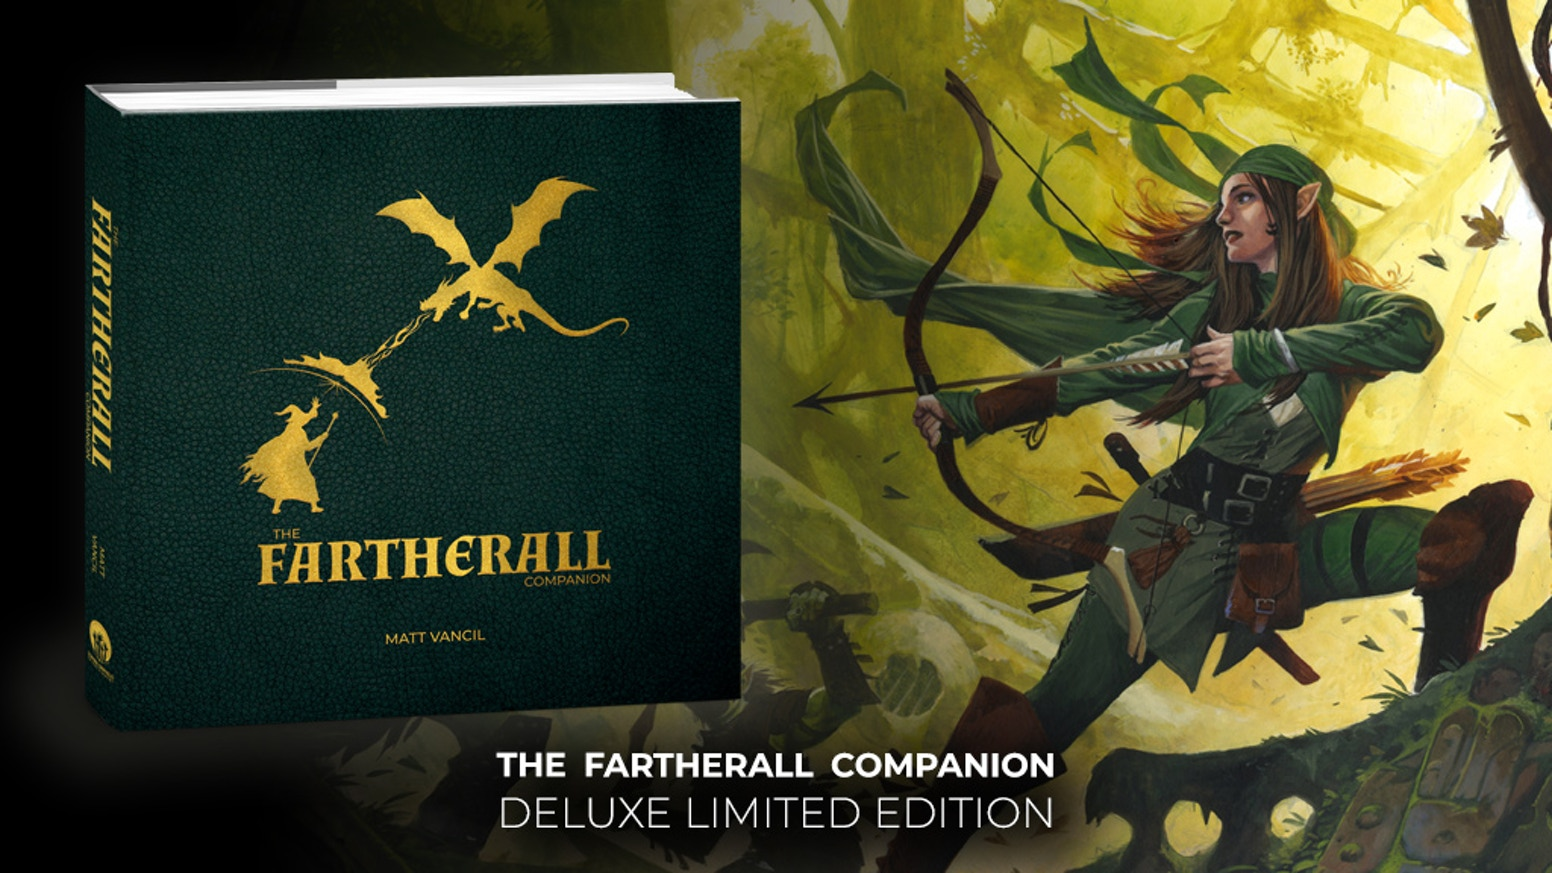 A deluxe, full color edition of The Fartherall Companion, a 460-page campaign setting for the world of JourneyQuest and The Gamers